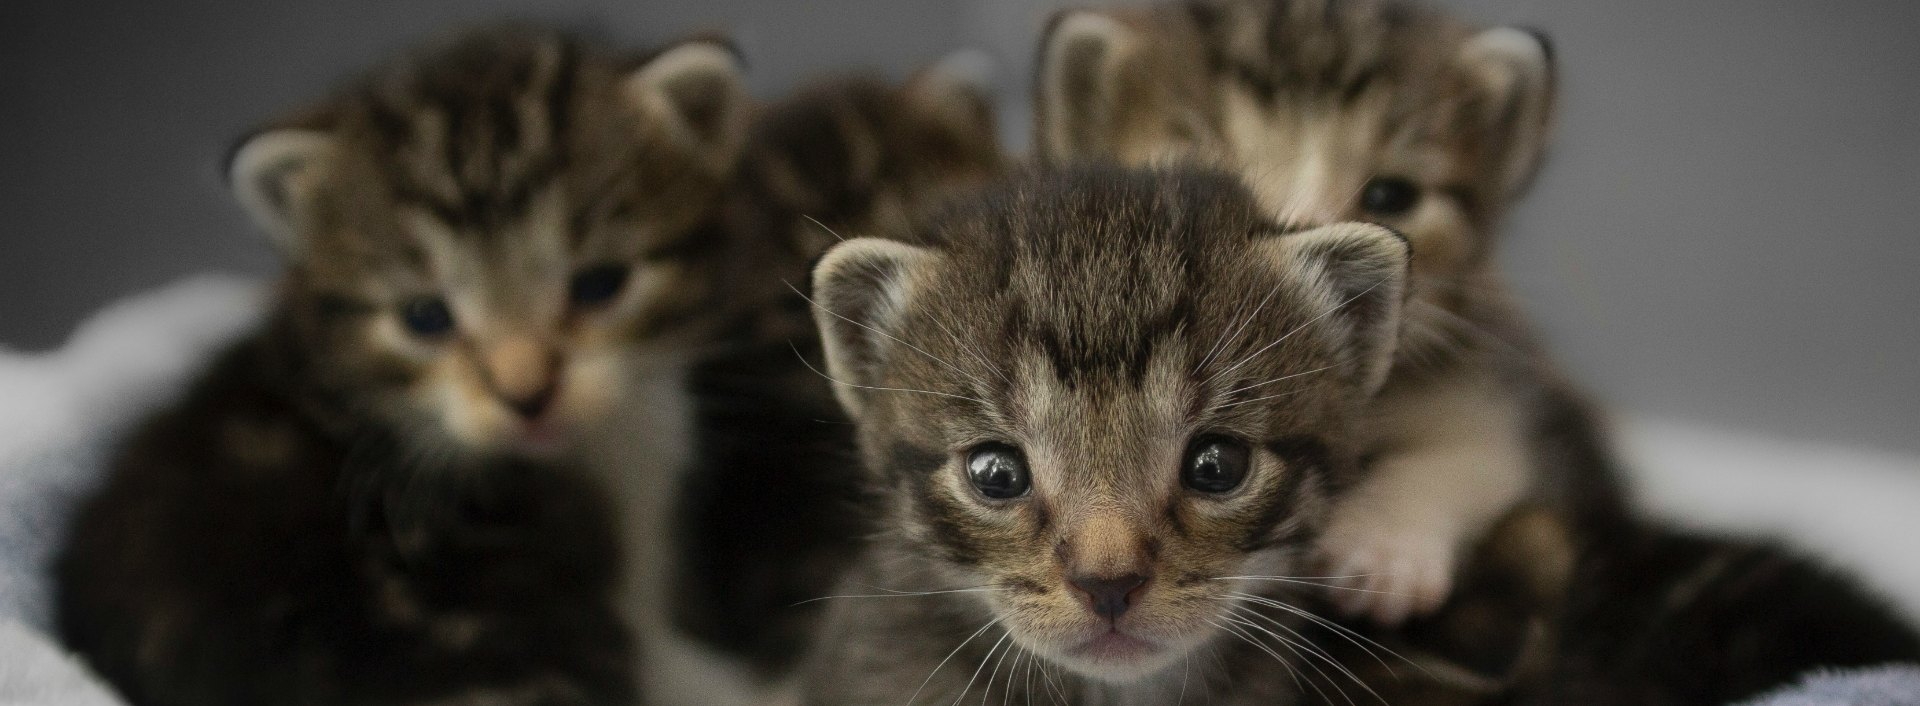 A litter of kittens is an examples of collective noun.